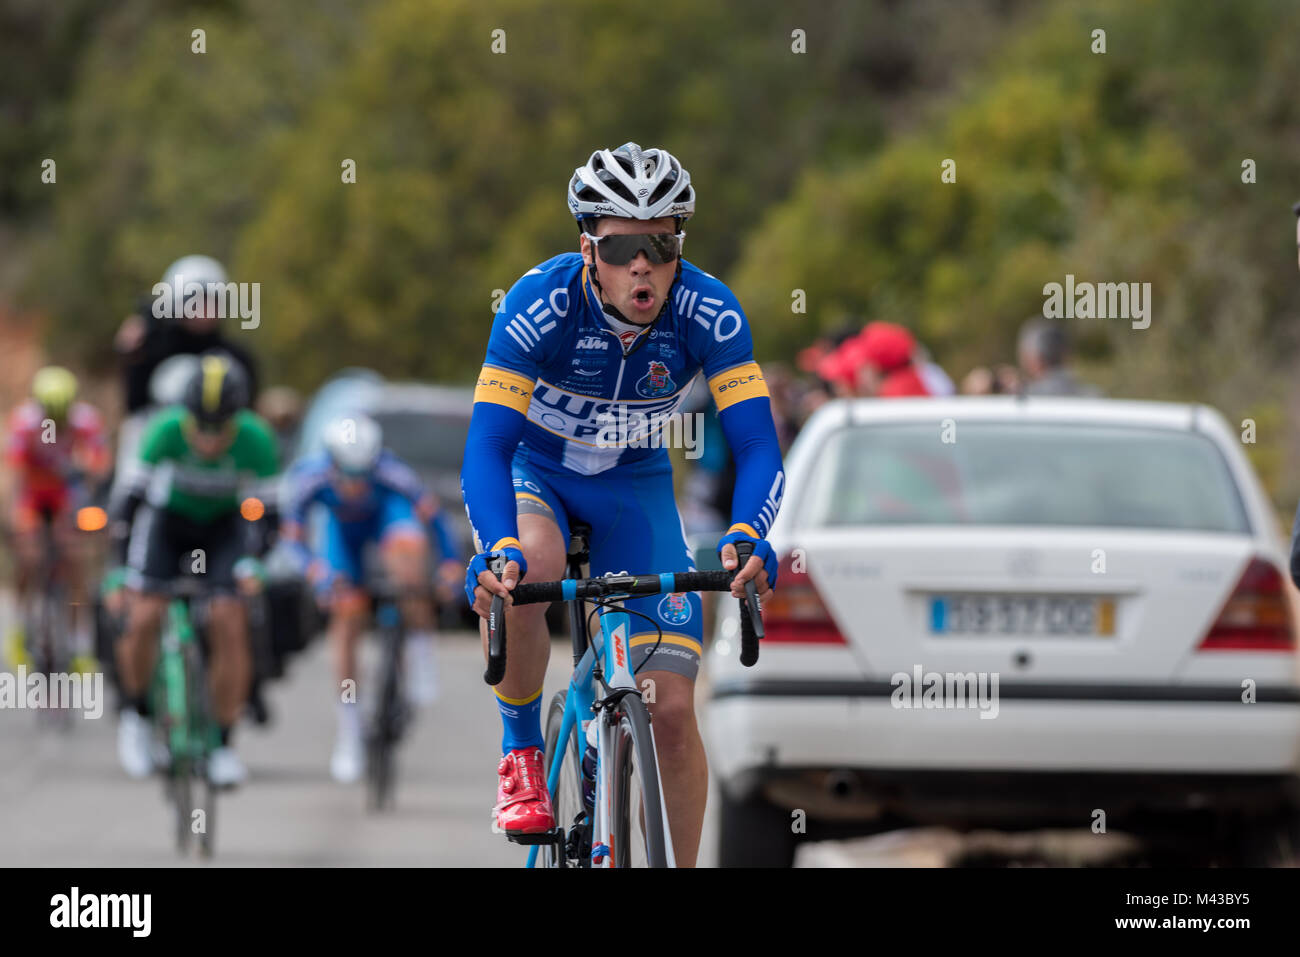 Algarve, Portugal, 14th Feb, 2017, João Rodrigues (W52-FC Porto) taking 1st on the Cat 4 climb of Aldeia dos - Stock Image